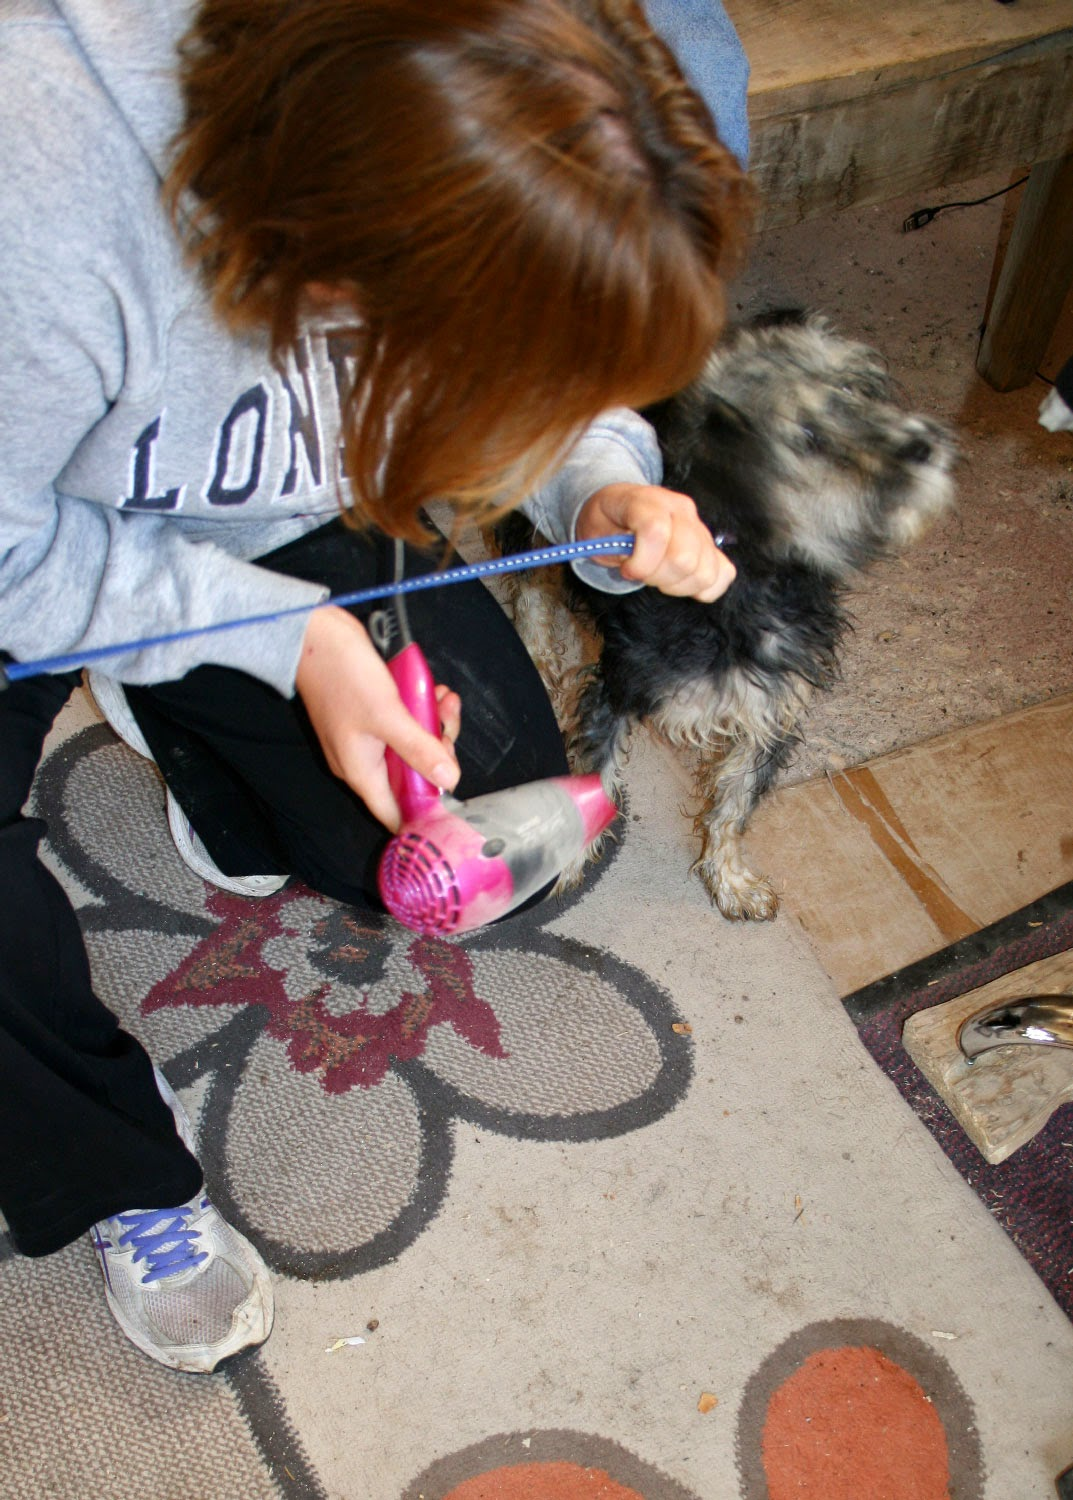 Blow drying a puppy